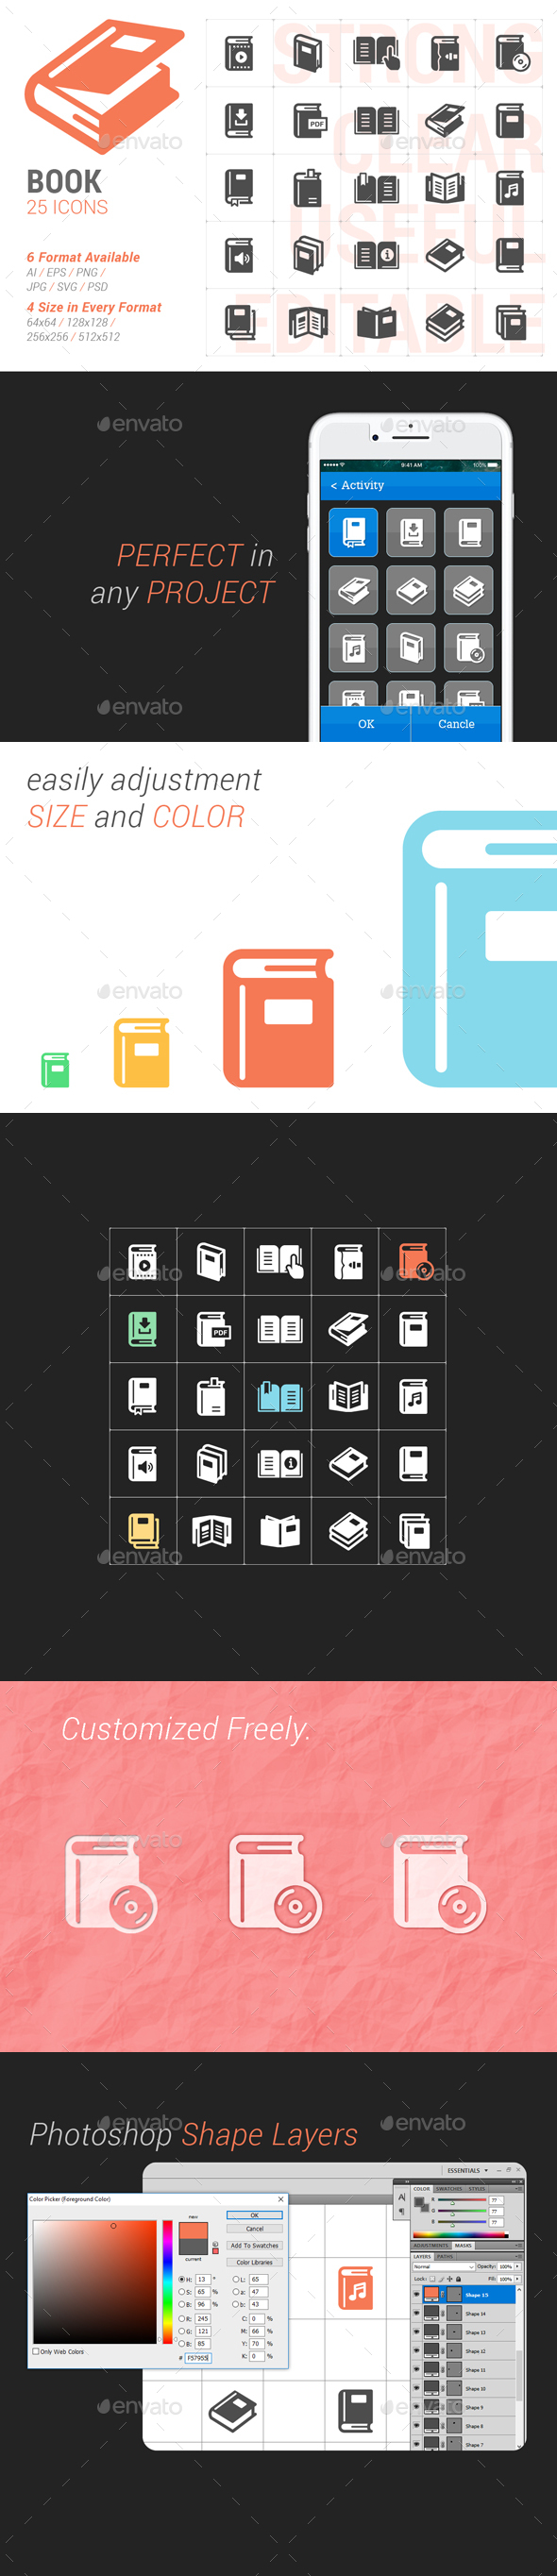 Book Filled Icon - Icons